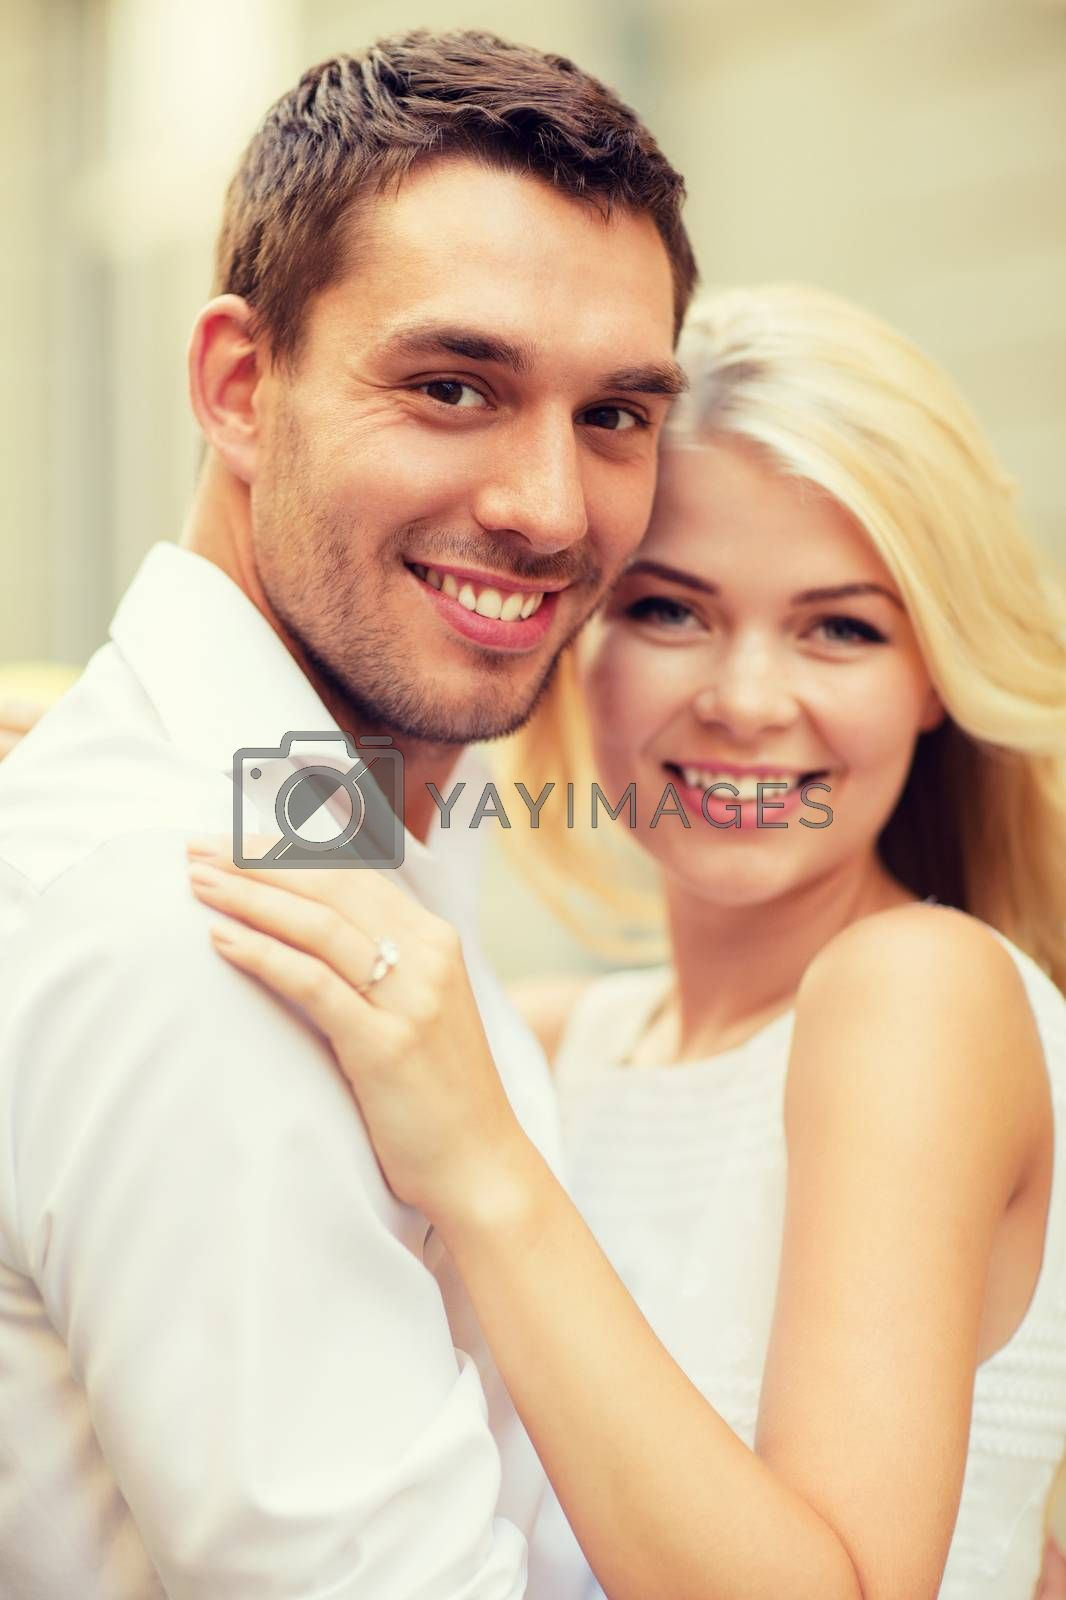 summer holidays, celebration and wedding concept - young engaged couple in the city